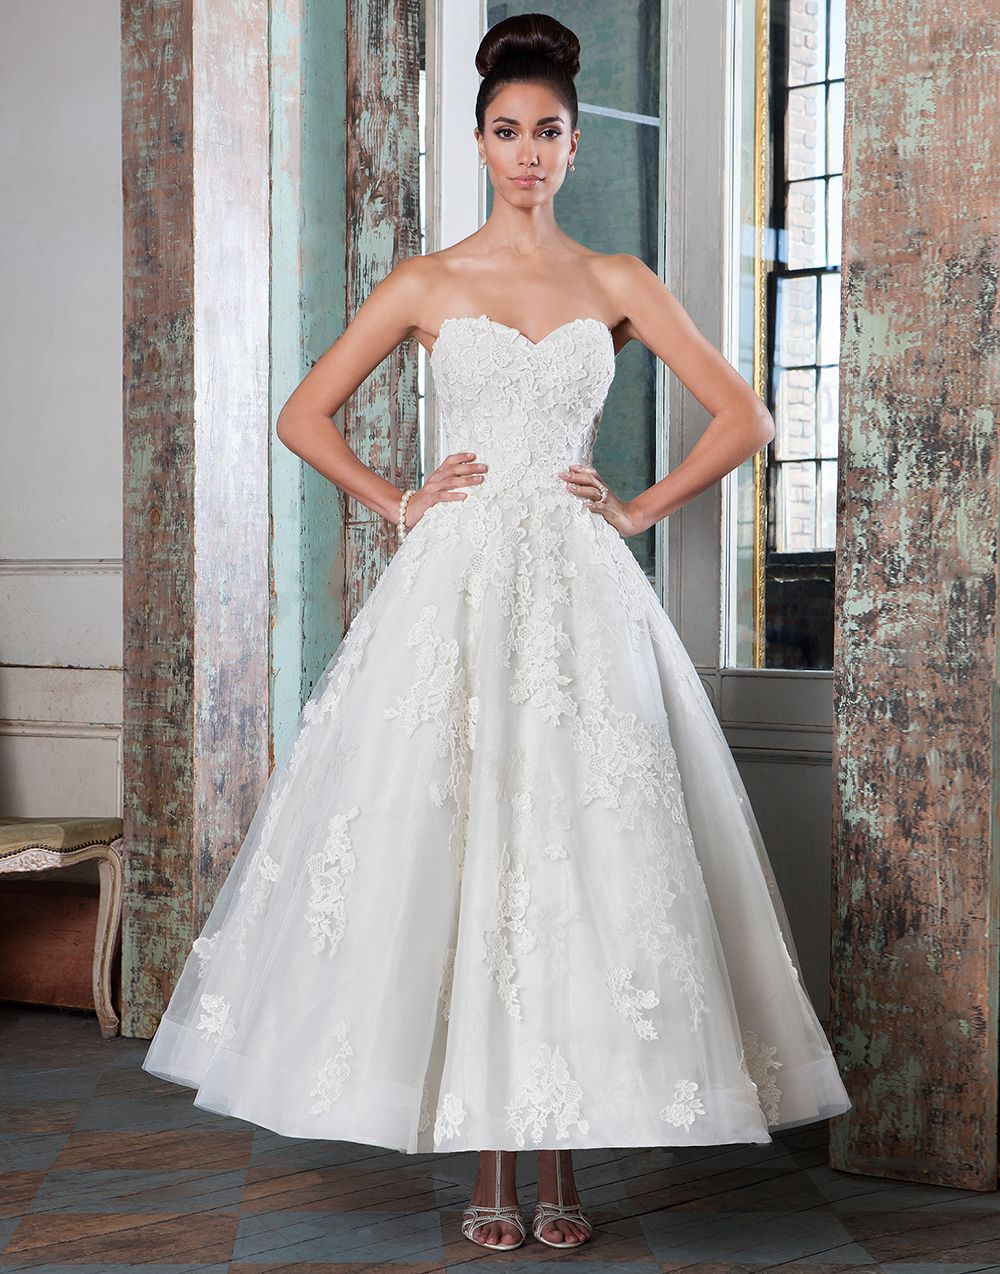 Justin Alexander signature wedding dresses style 9800 | Tea length ...